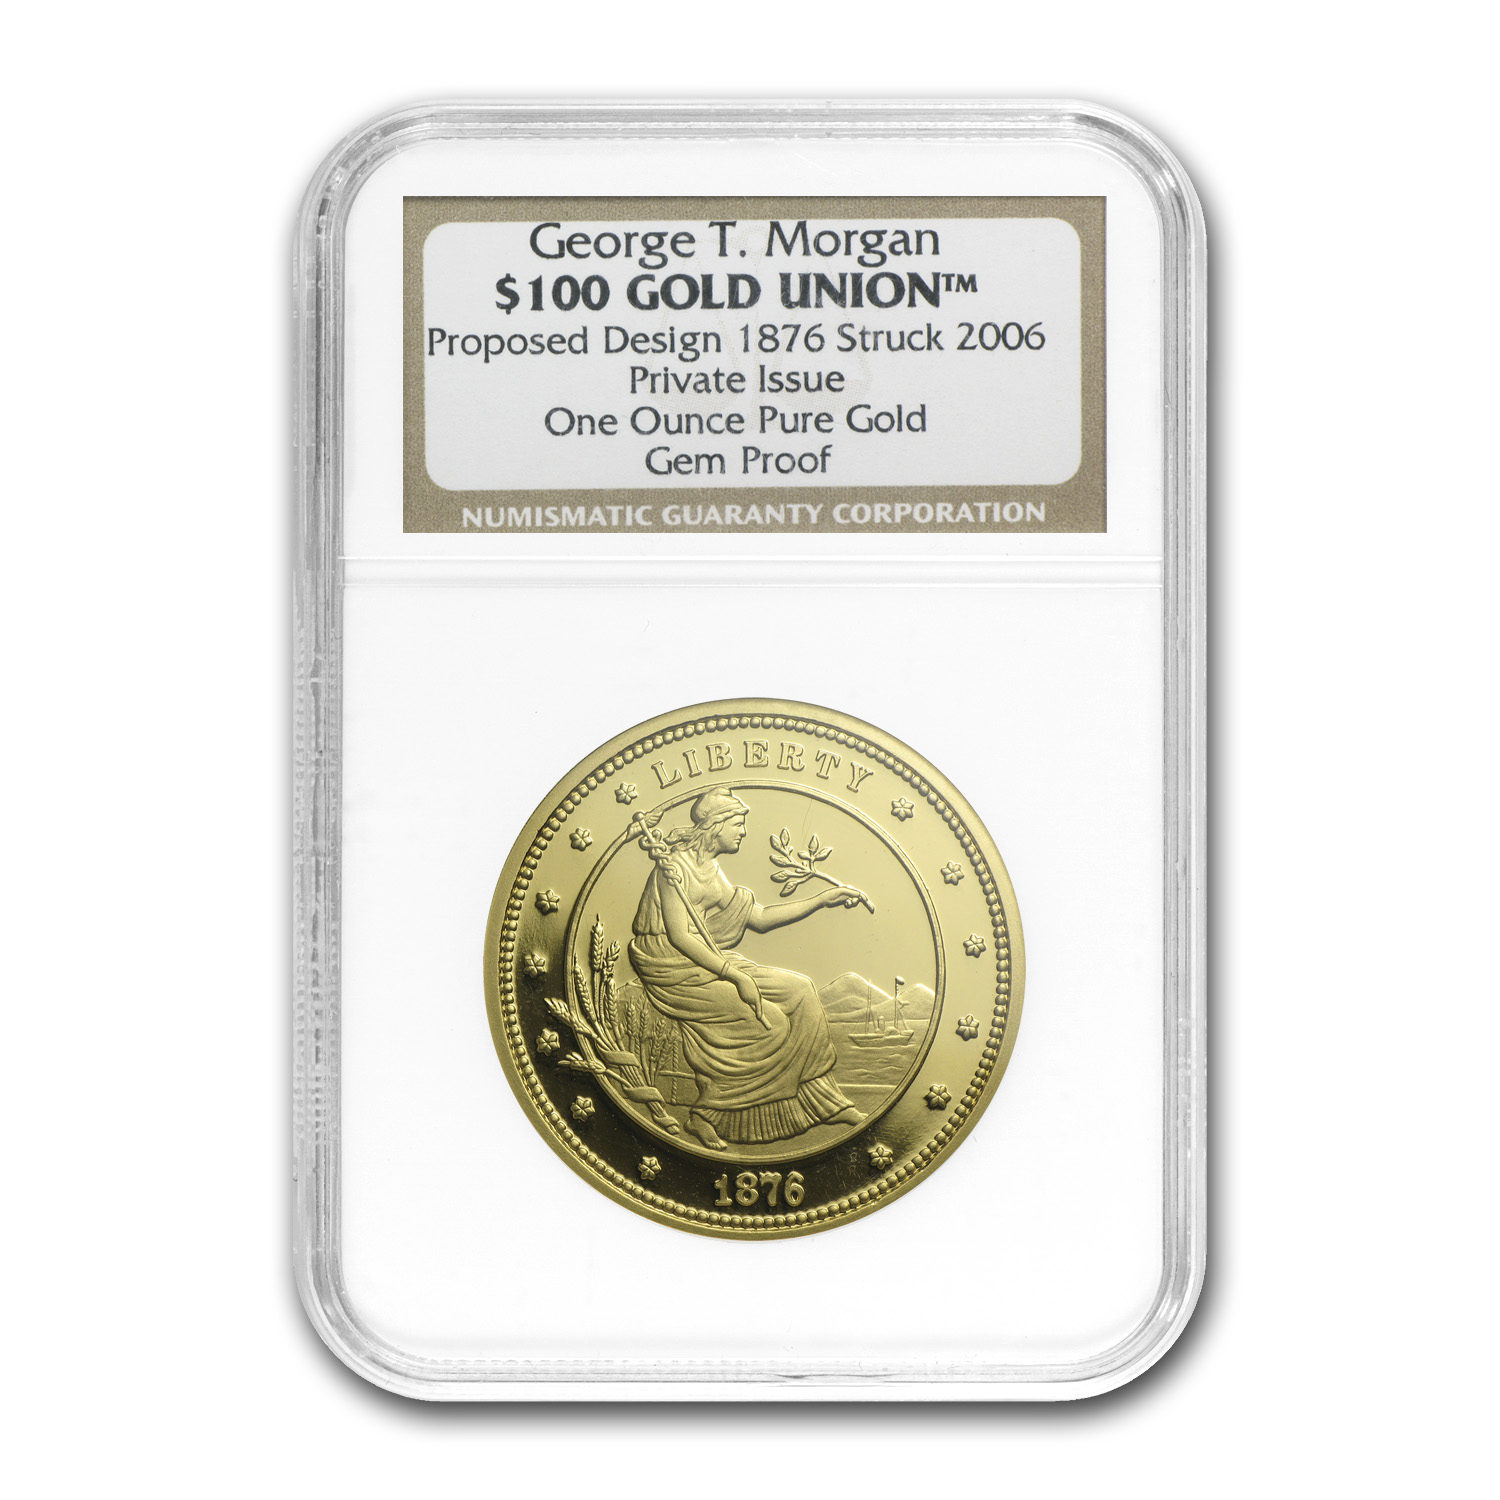 1 oz Gold Round - $100 Gold Union George T. Morgan (NGC PF-UCAM)